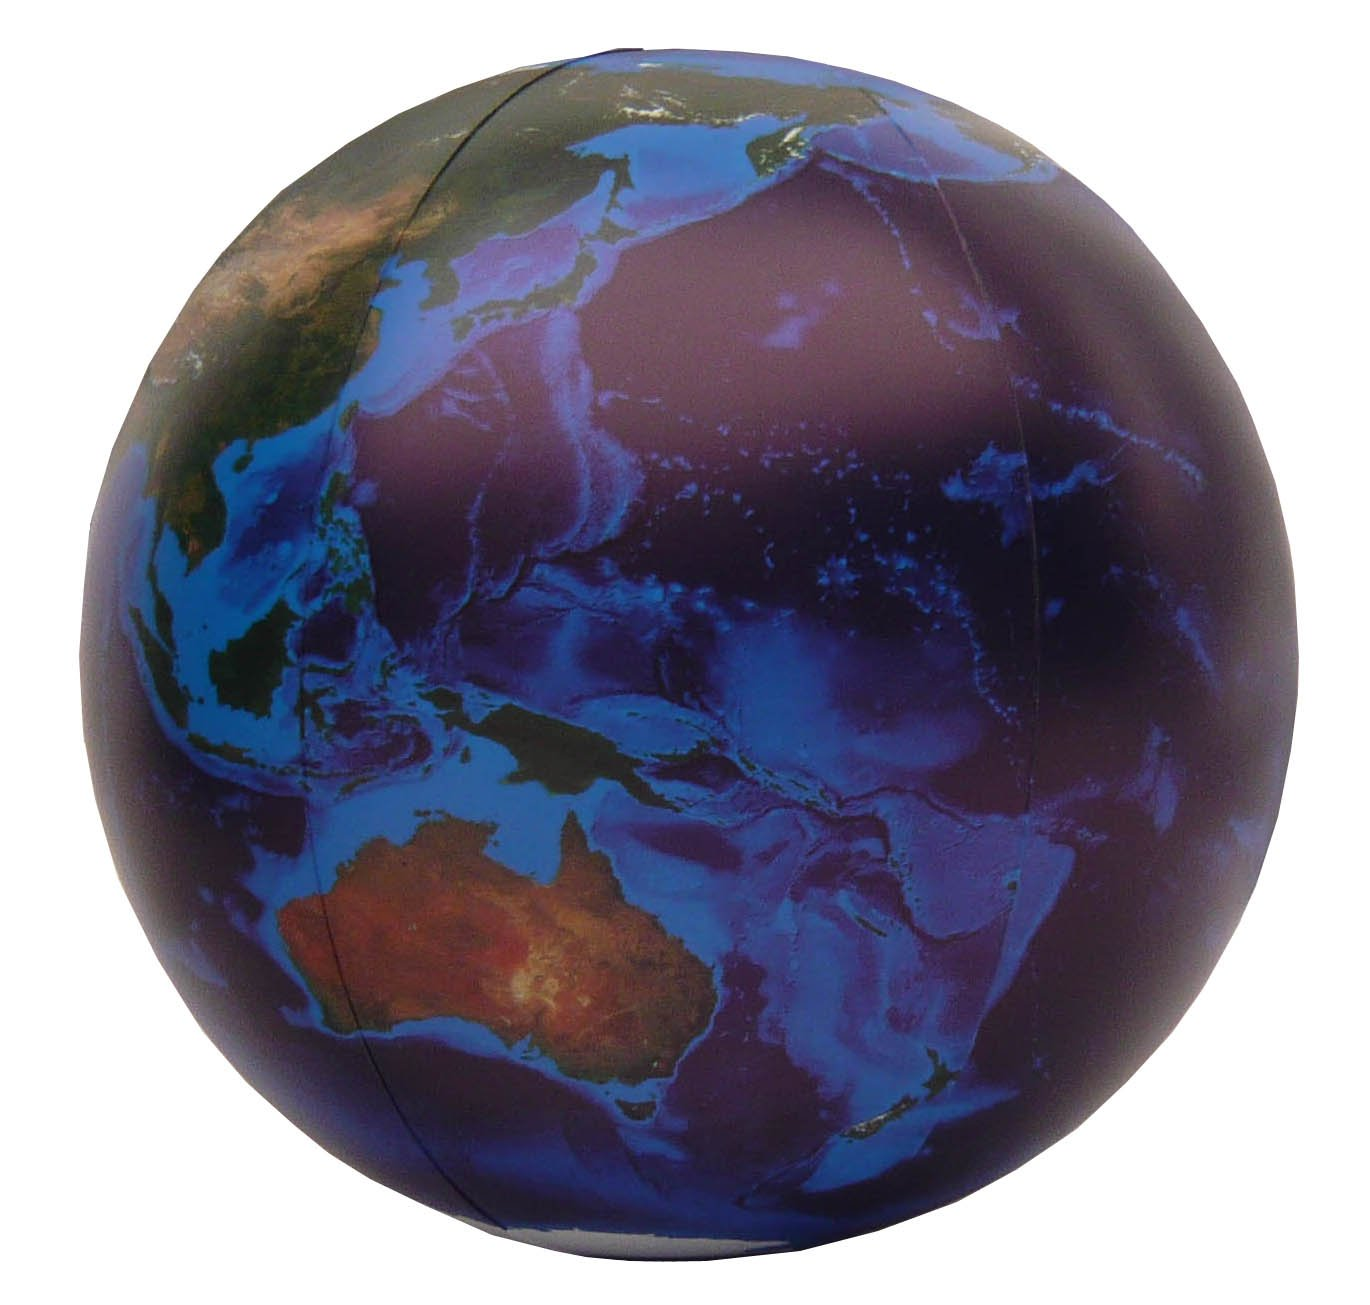 Jet Creations GTO-36TBM Blue Marble Earth Globe 36 inch- Best for Home, School, Party, Pool, Summer Camp, for Kids and Adults, Multi, 36''